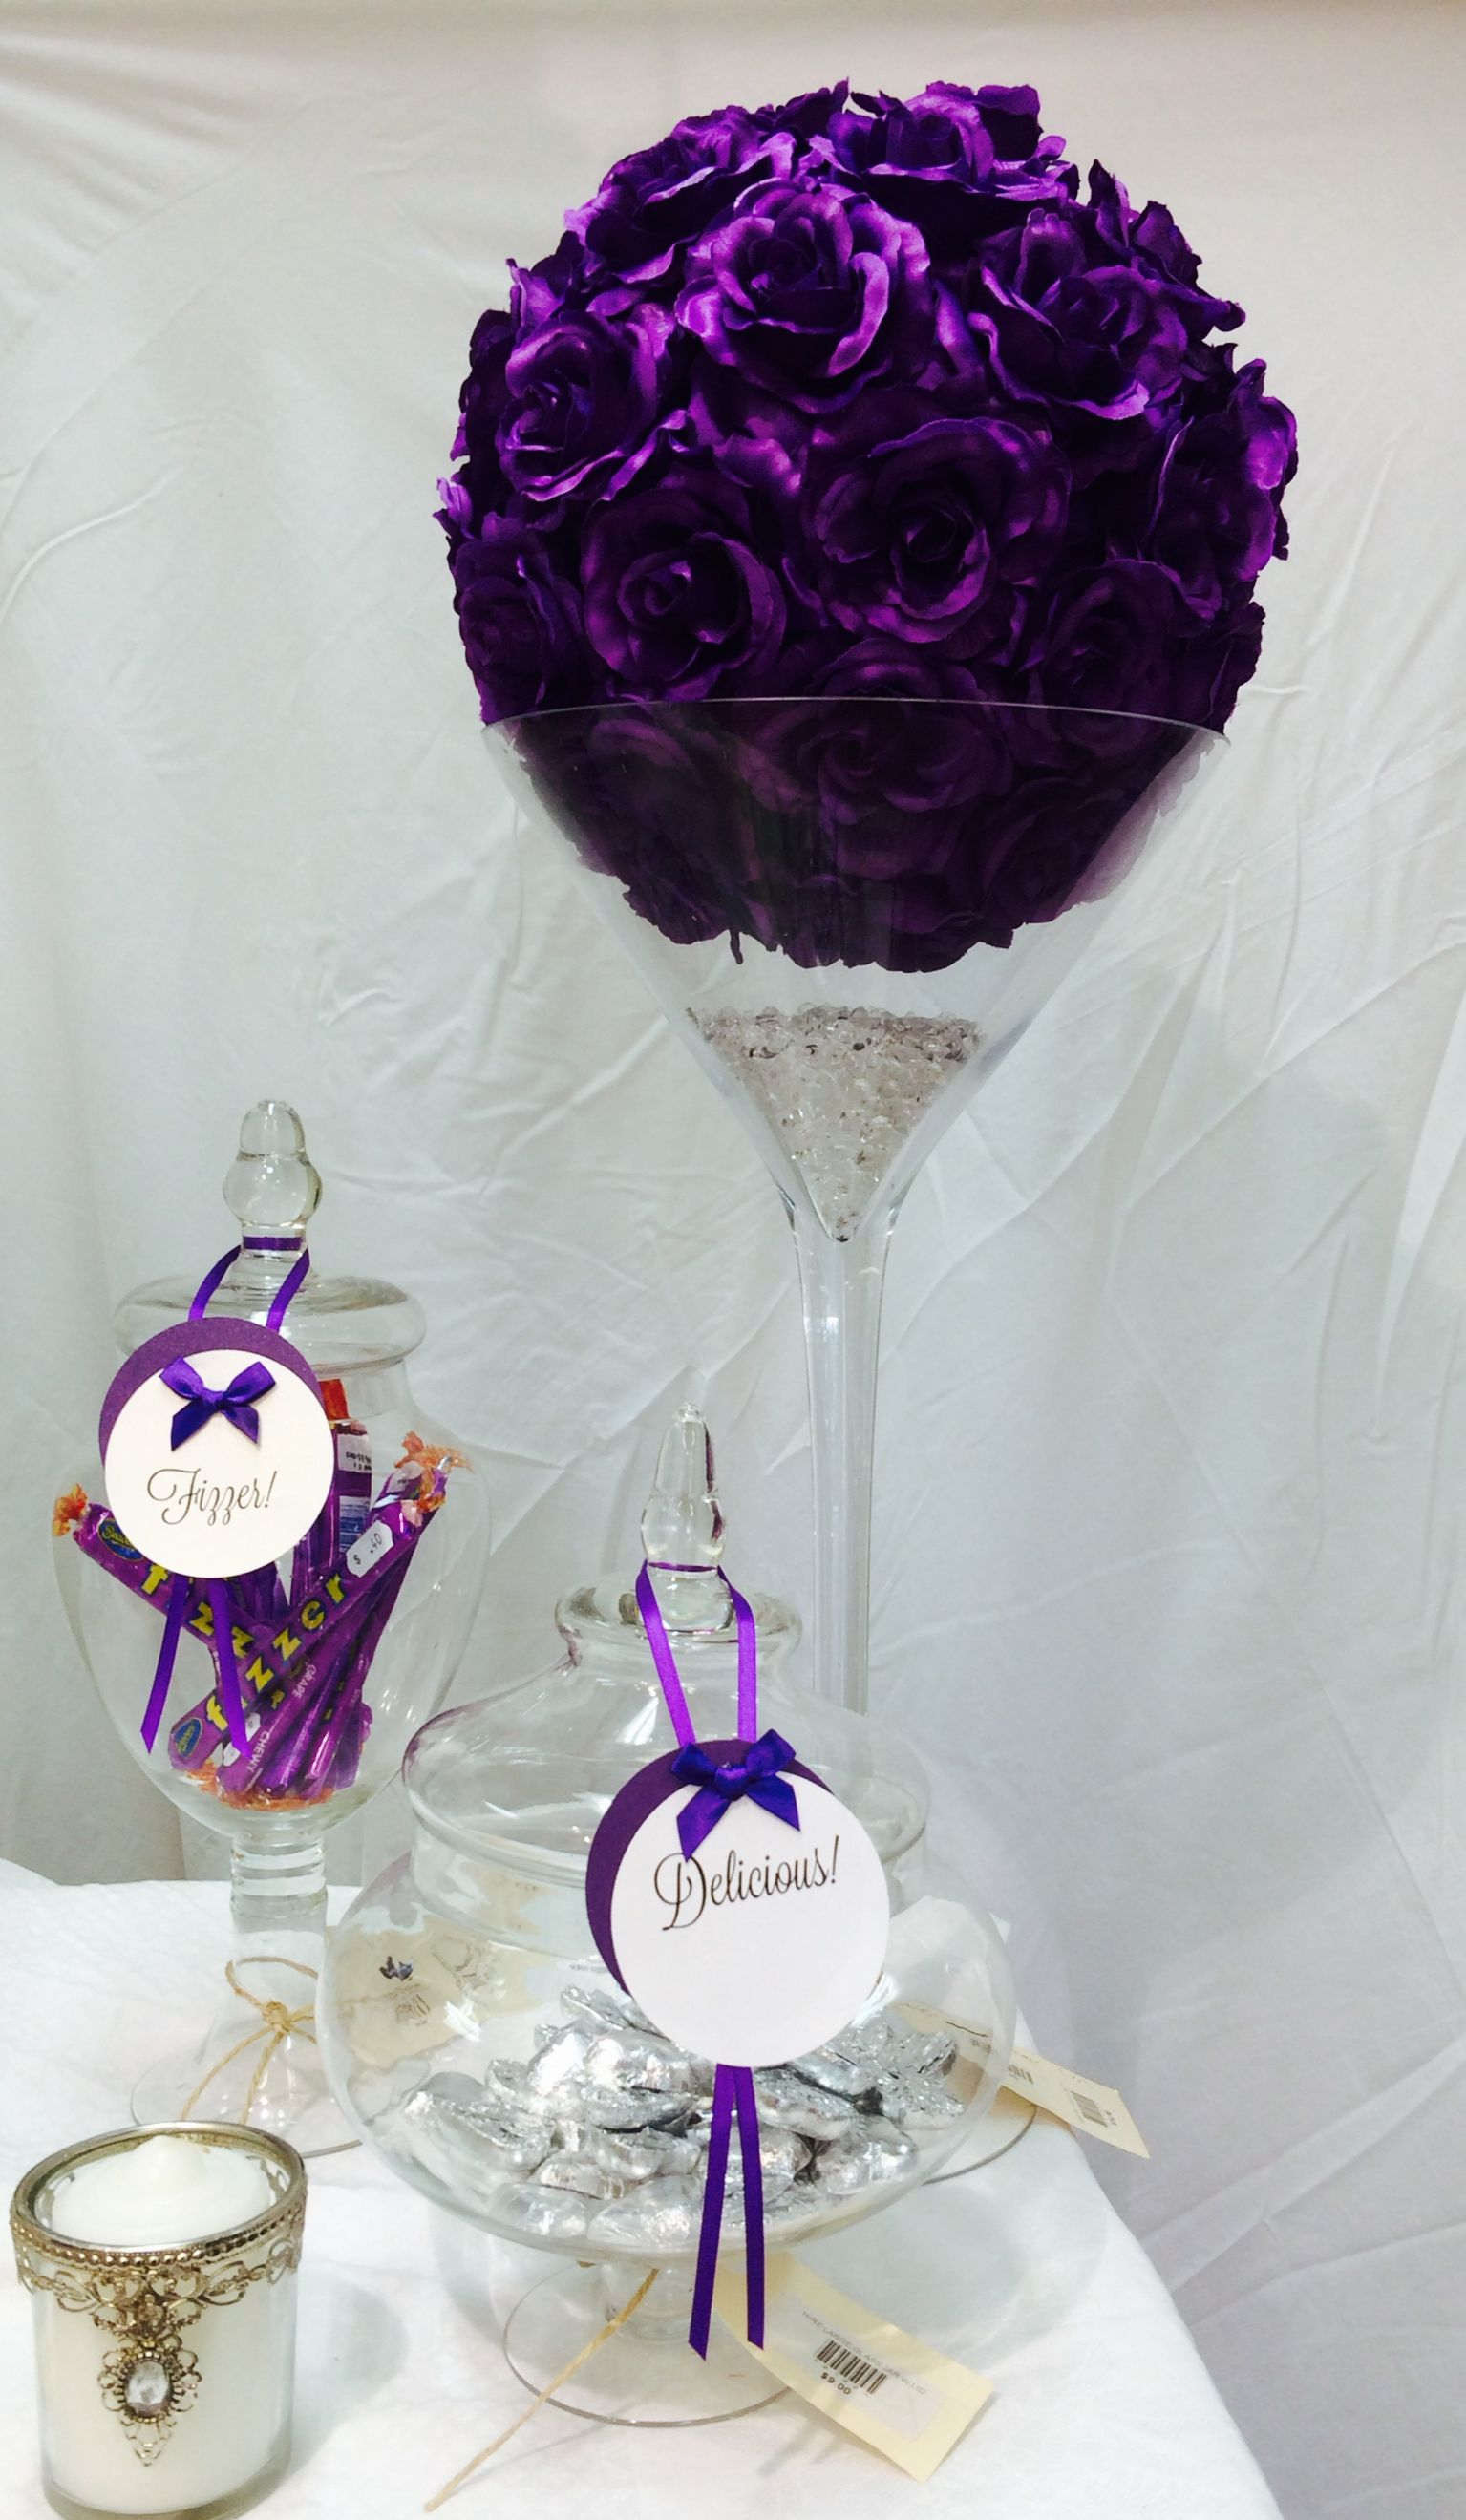 We love the purple flower balls decor on the purple lolly table